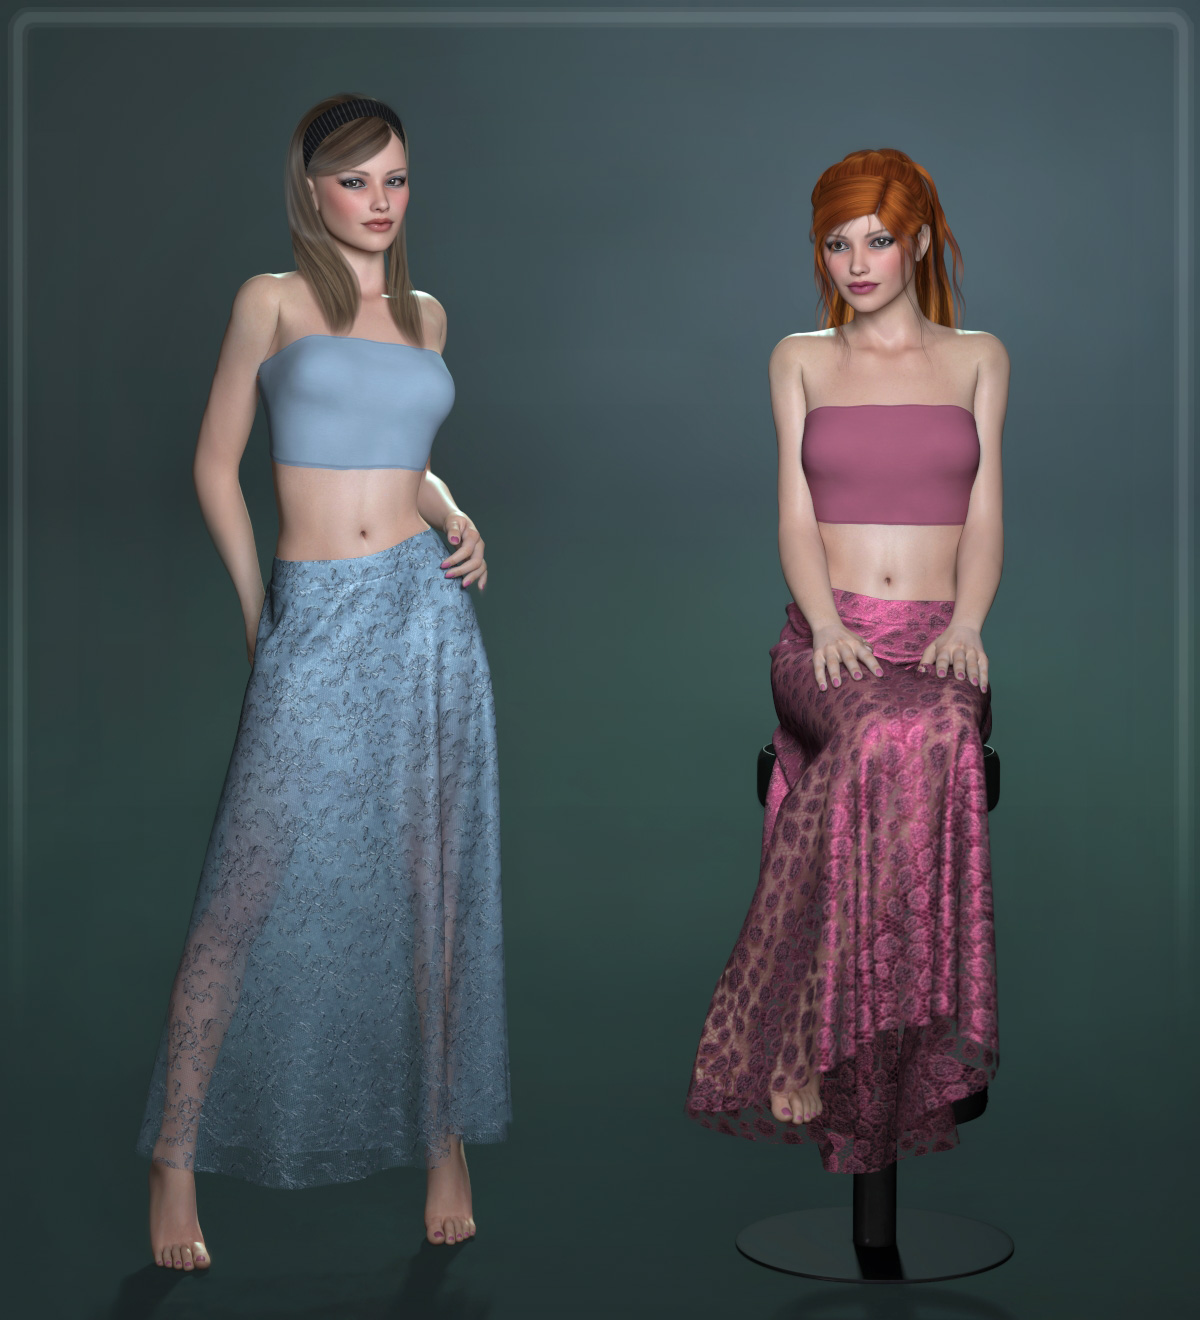 Dynamic Long Skirt 2.0 - Multicharacter